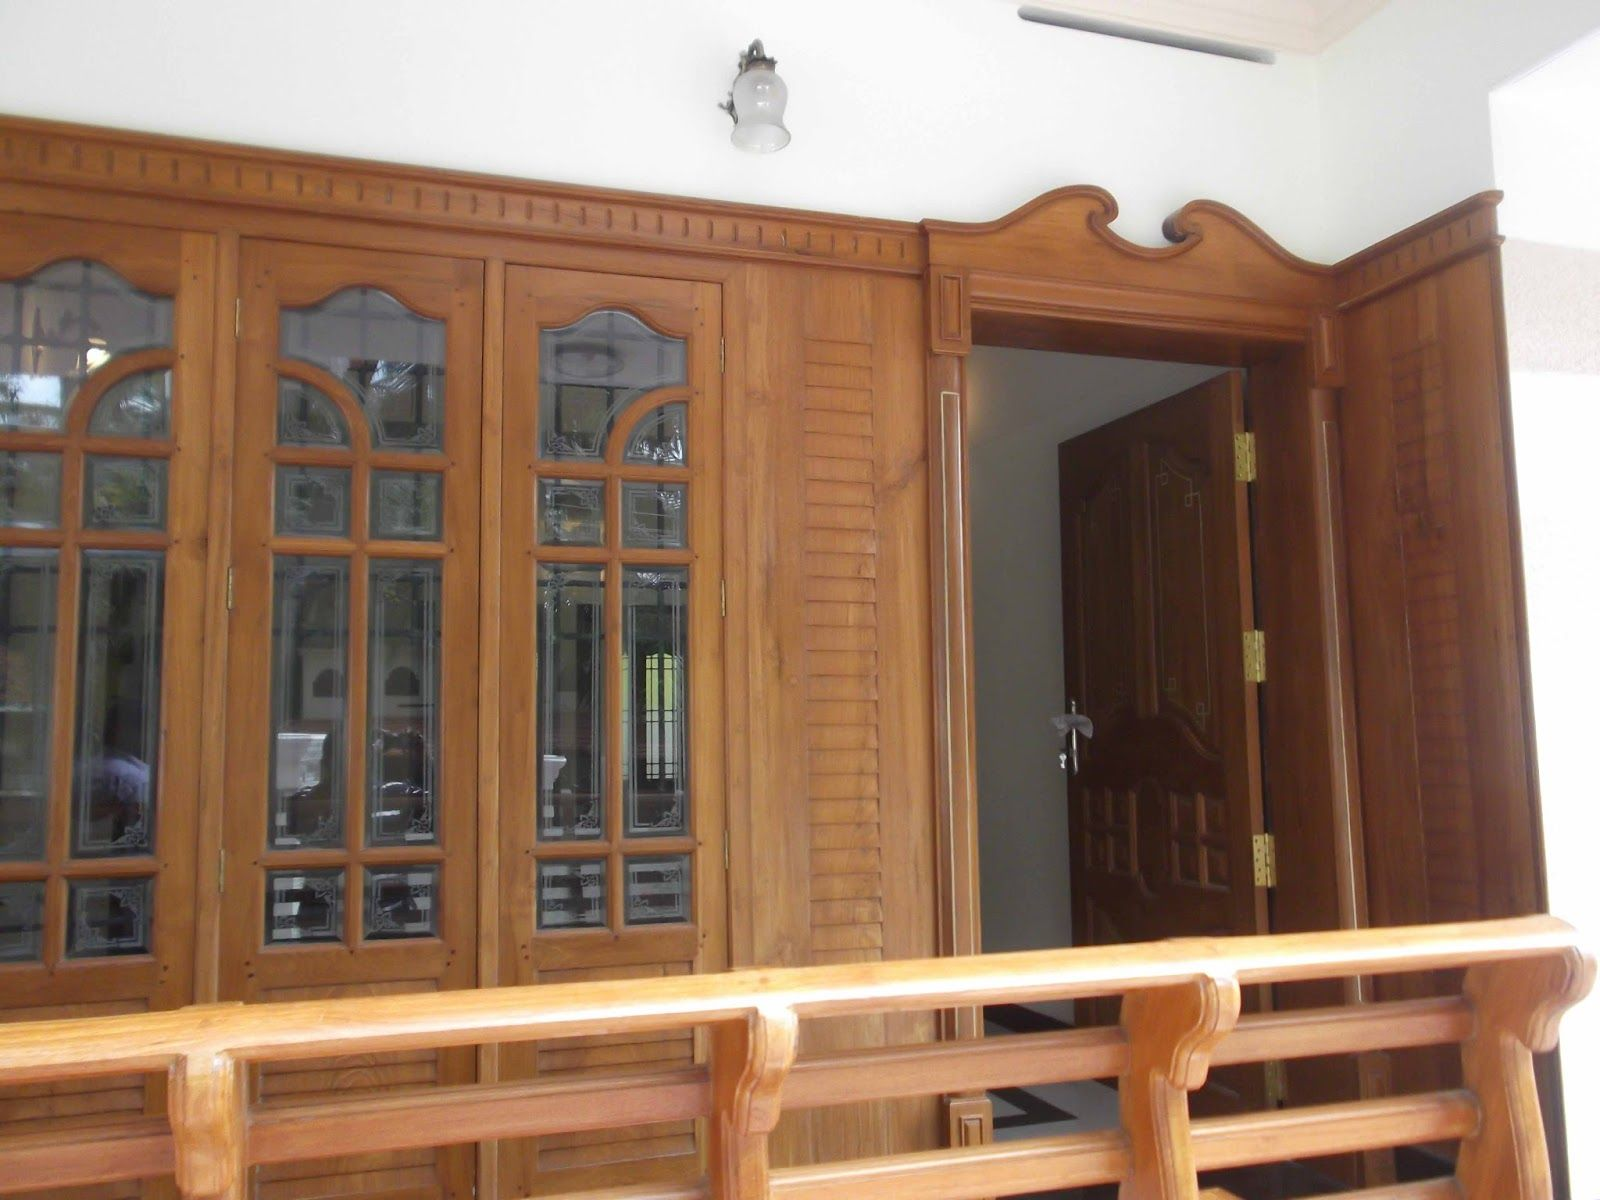 Kerala house front door designs models front doors for Widows and doors